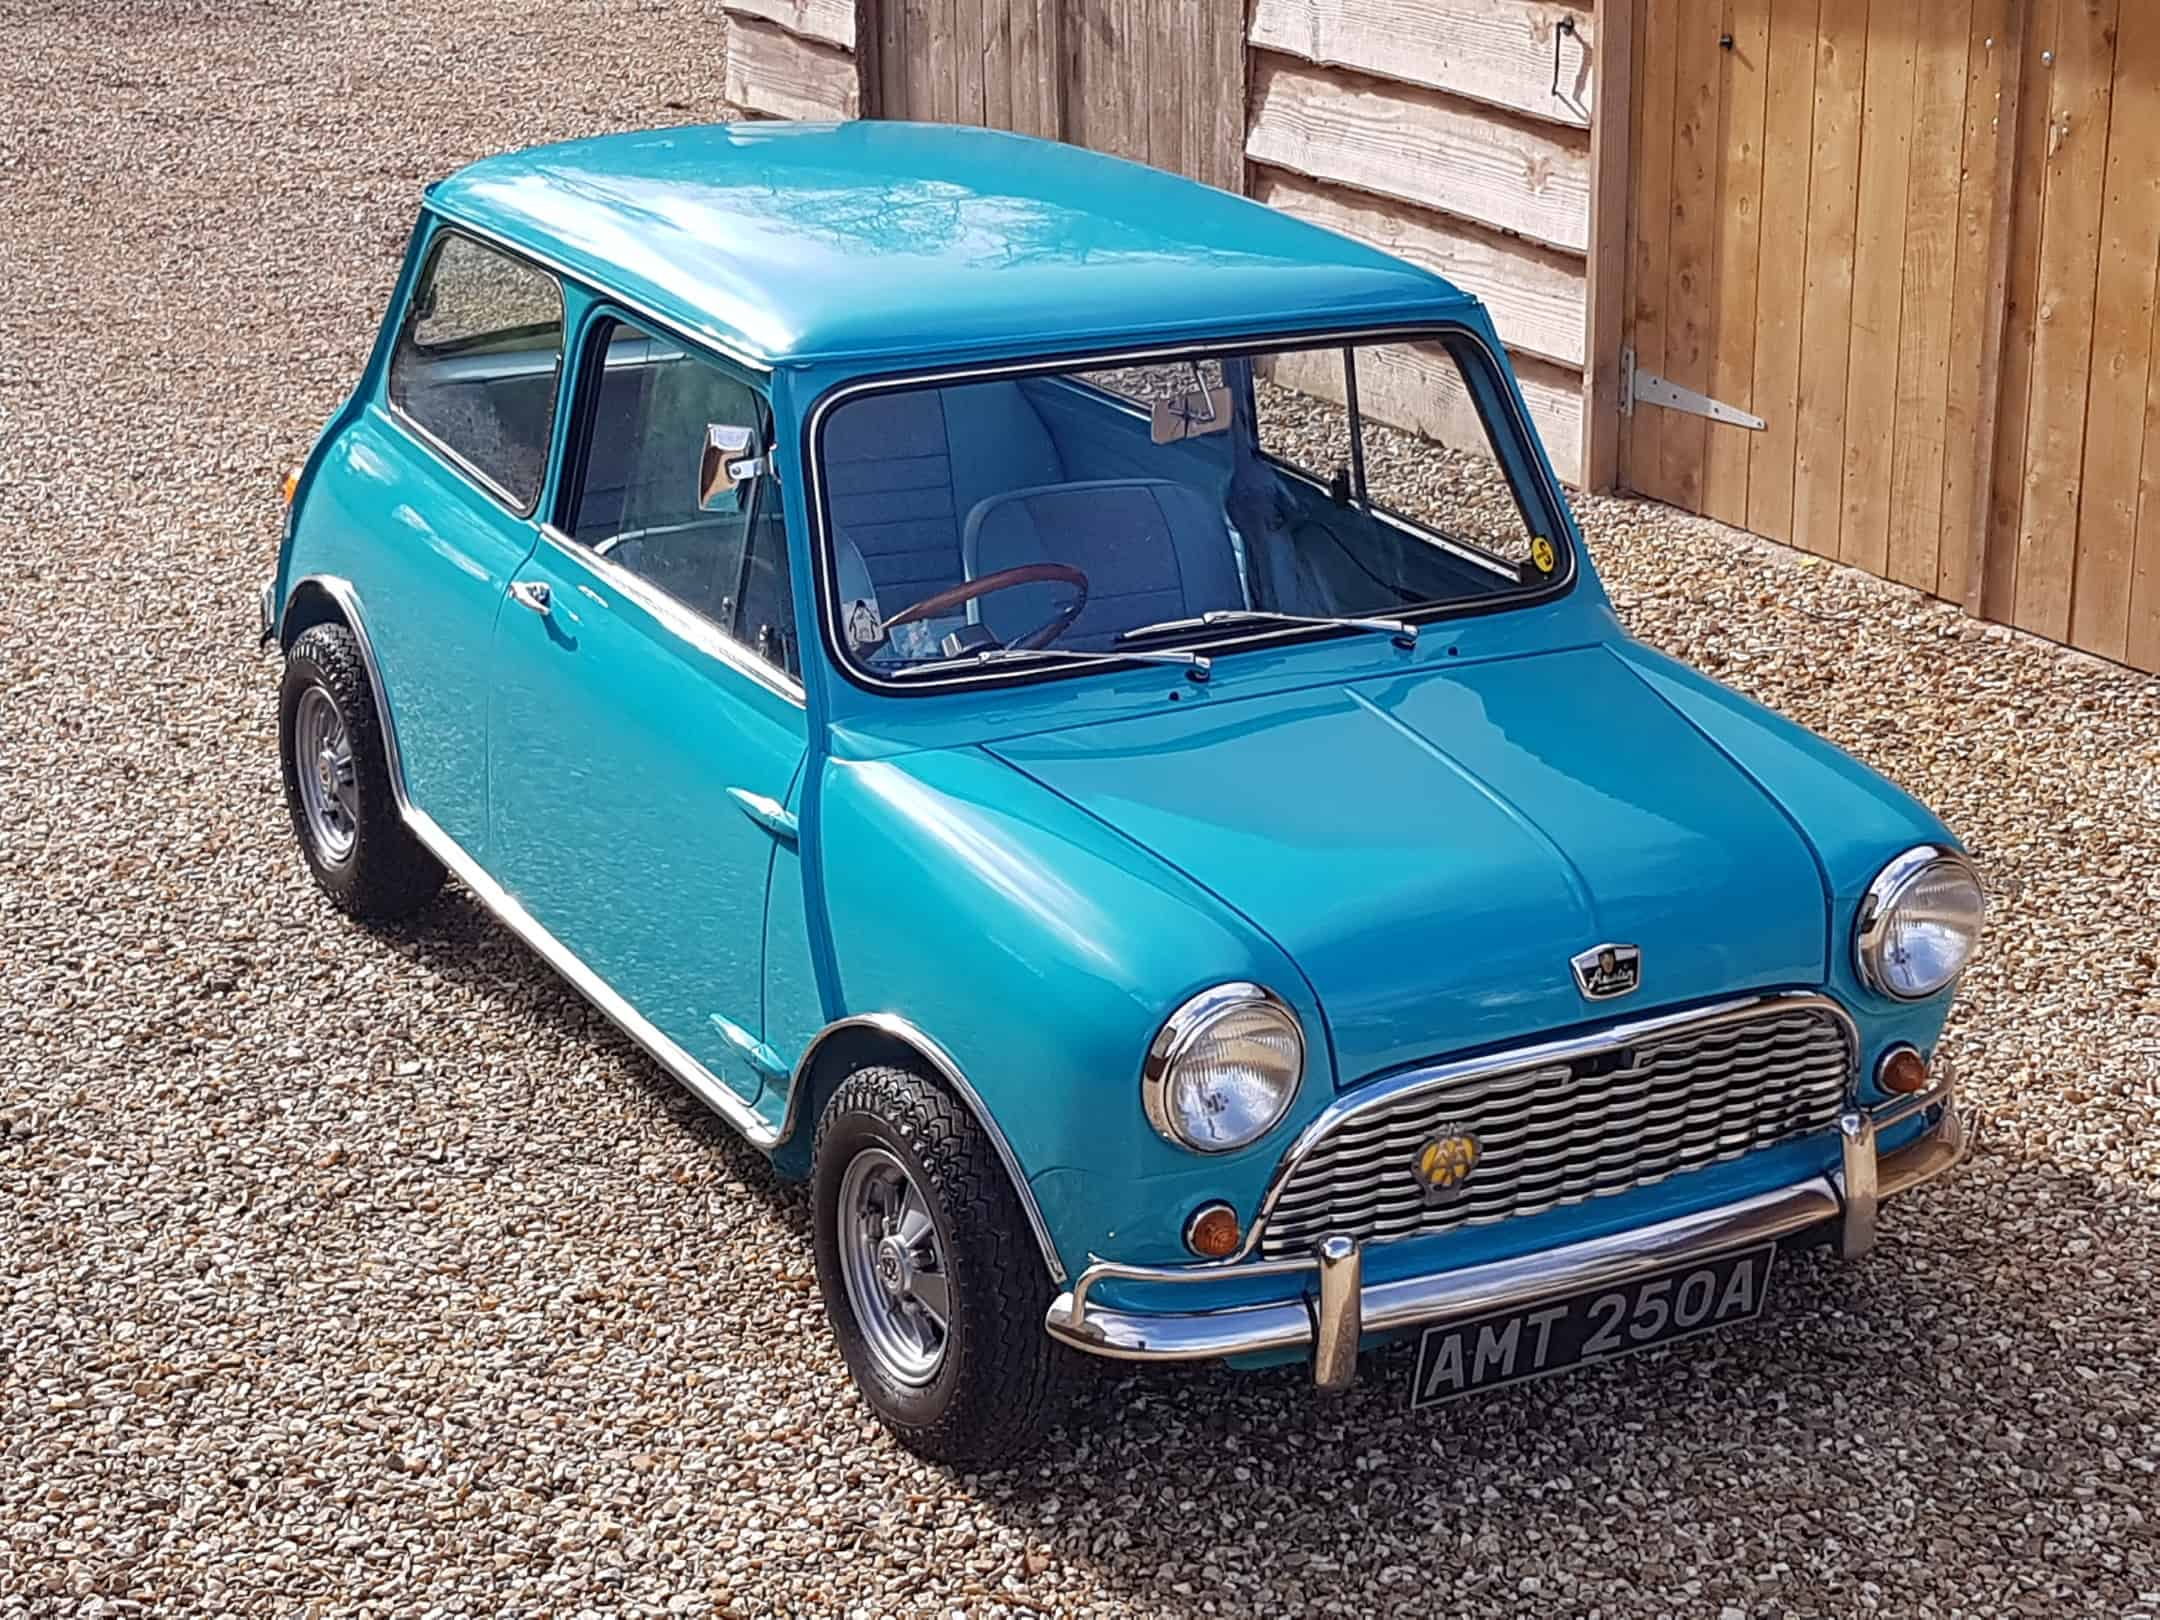 ** COMING SOON ** 1963 Mini Super Deluxe Speedwell '2 owners in 58 years!'.